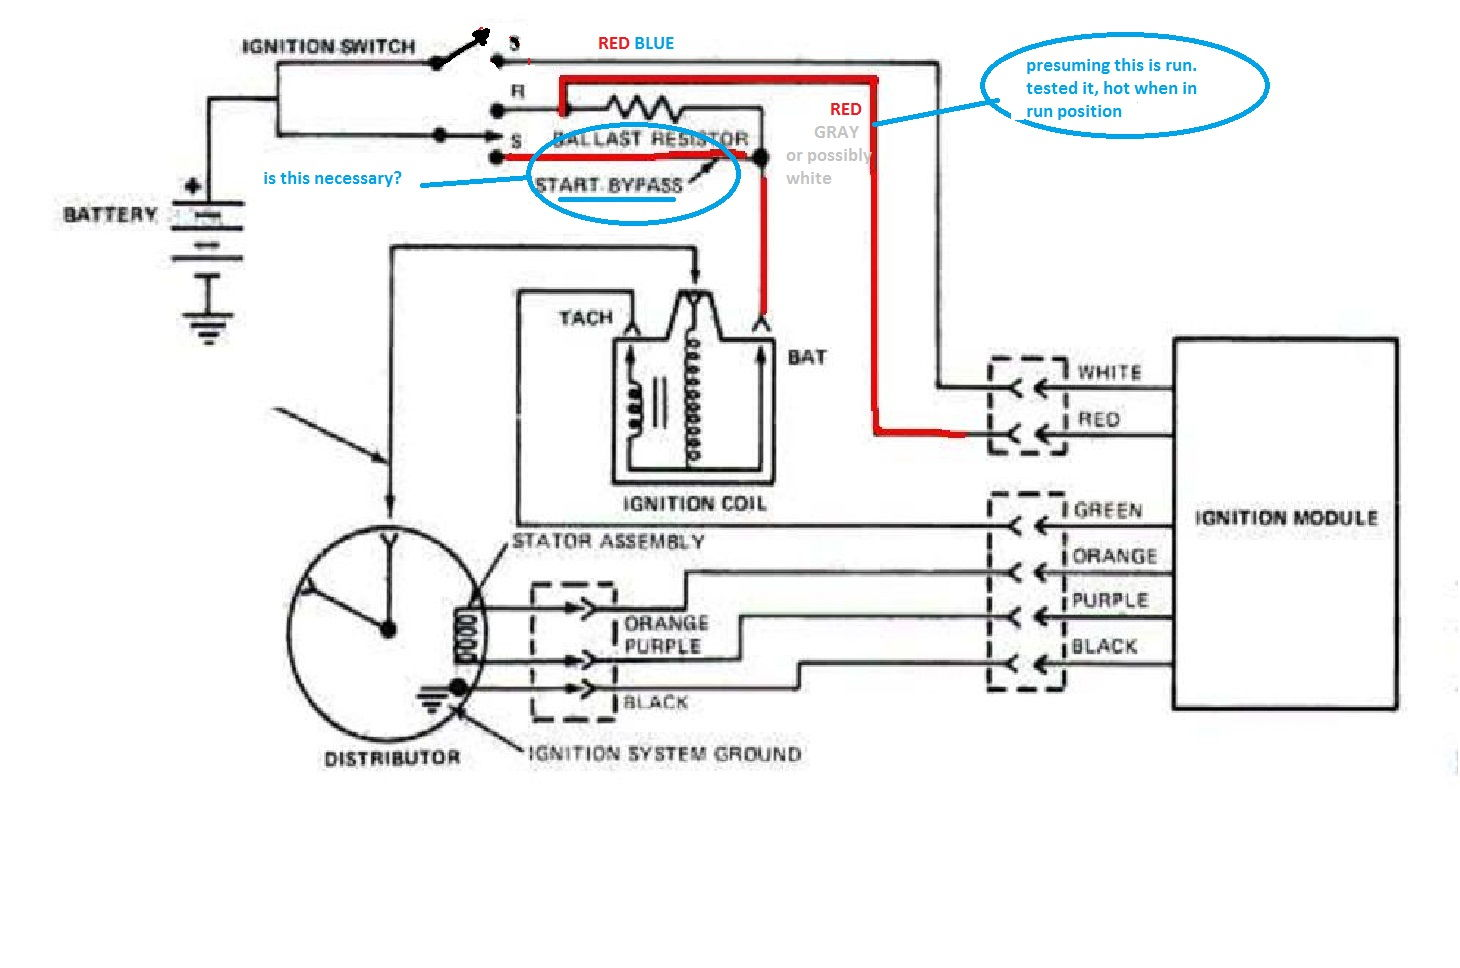 80 onemoretime_77a733abdd0886c2d82bed12694a25a5d9ea8937 help with ignition wiring!!! ford truck enthusiasts forums ford ignition module wiring diagram at aneh.co